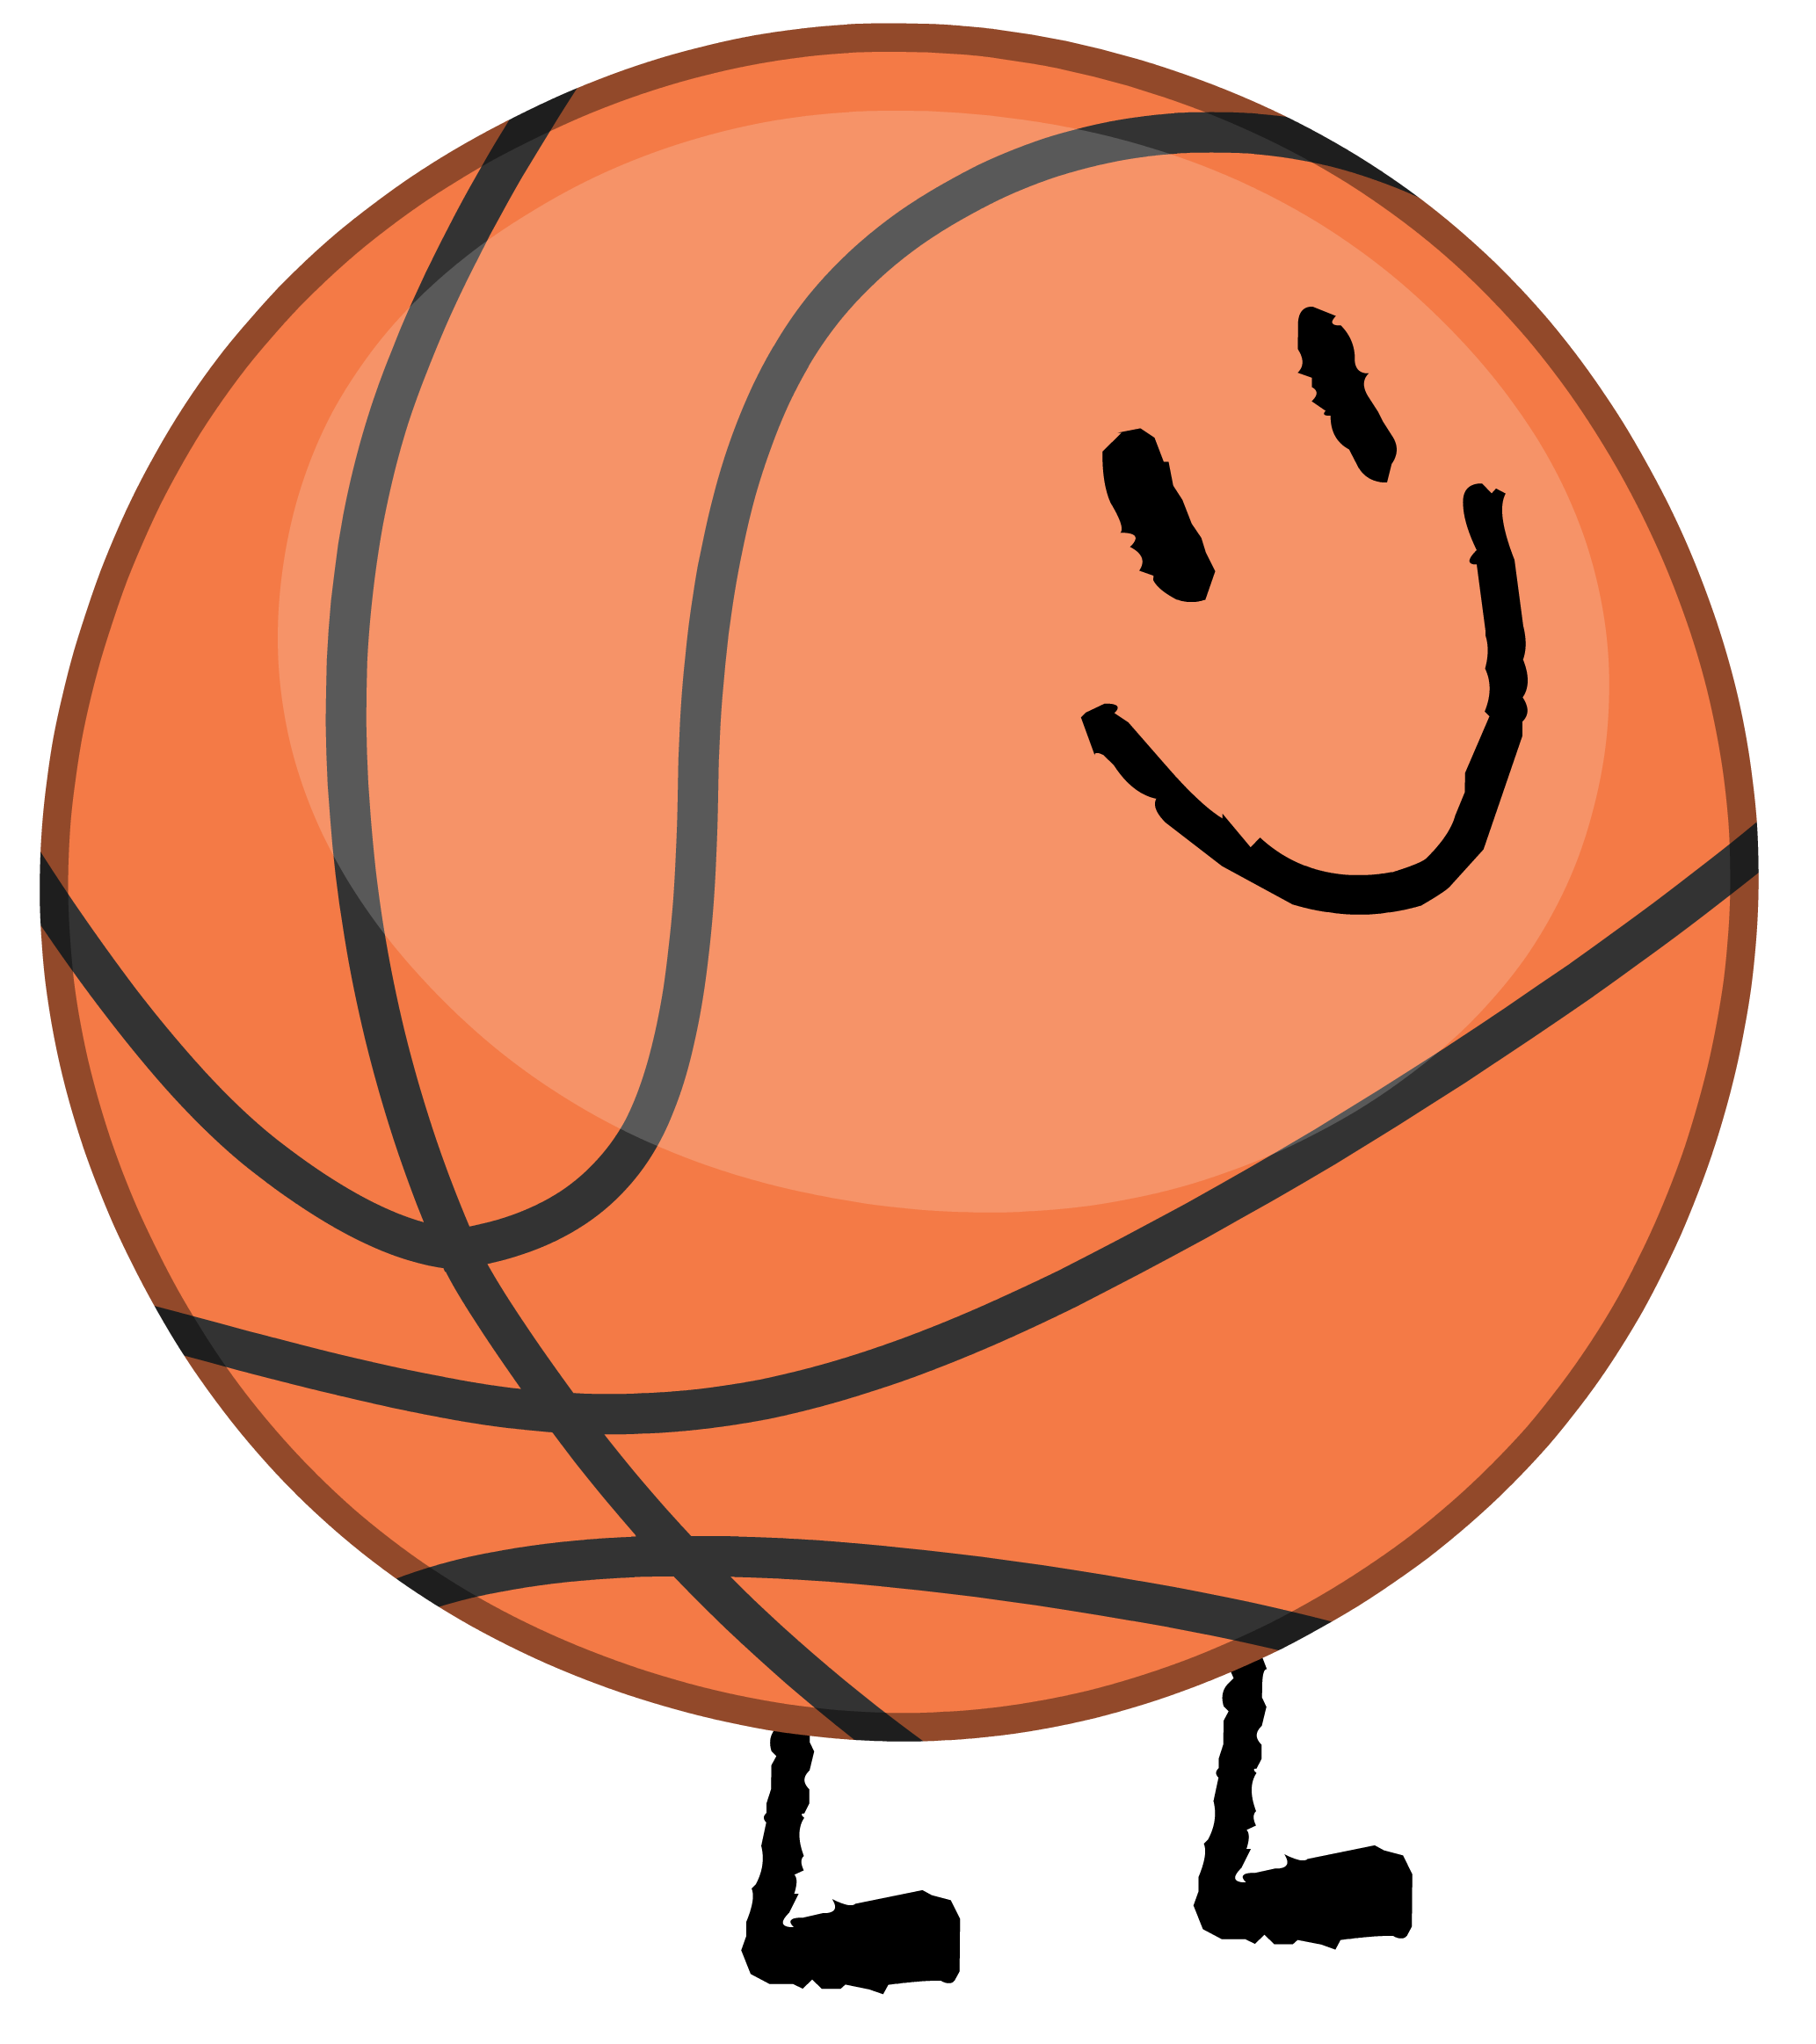 Excited clipart fortunate. Image basket ball intro